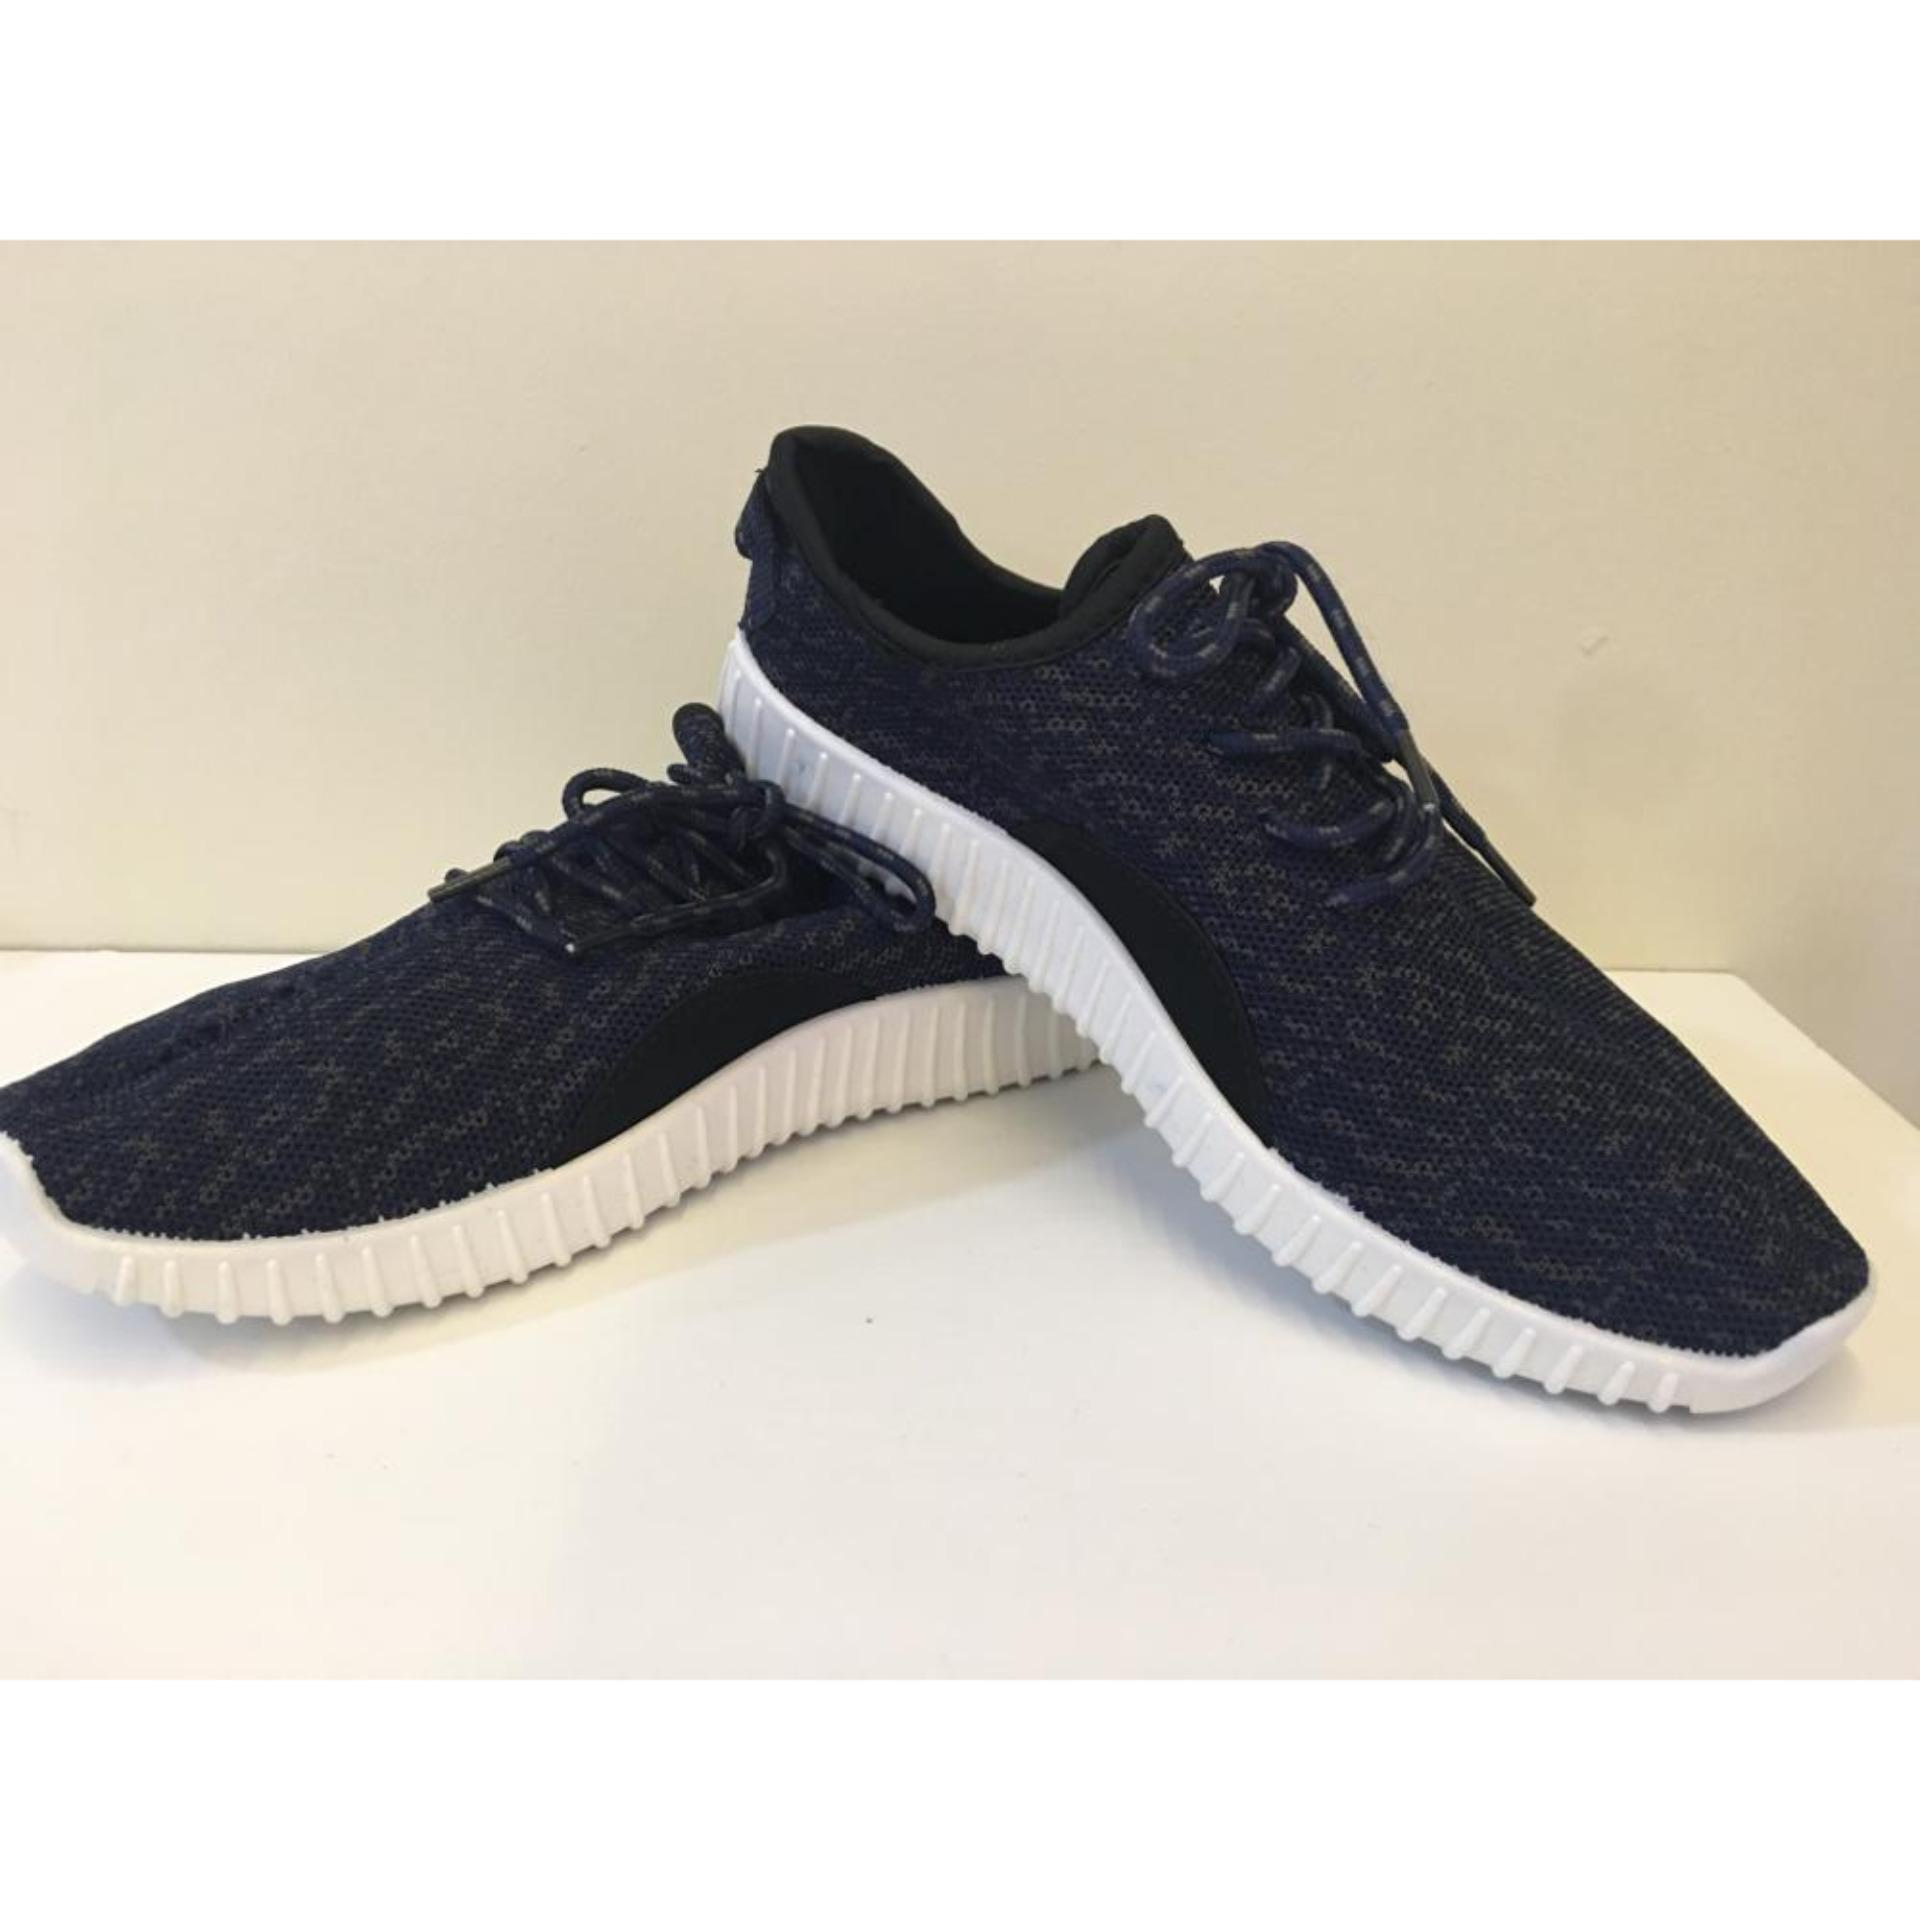 Sneakers Pria Import Korea - Navy Blue